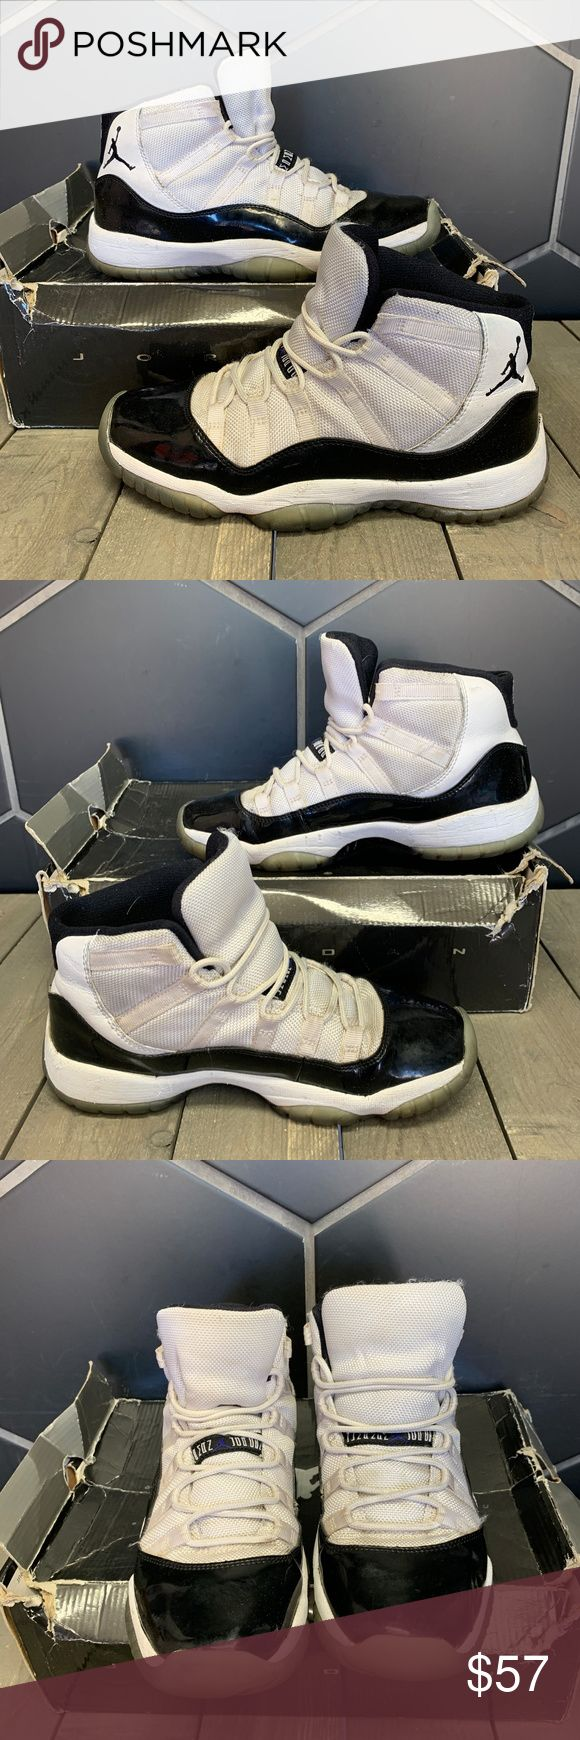 2011 Air Jordan 11 Concord GS Size 5.5 Youth Used W